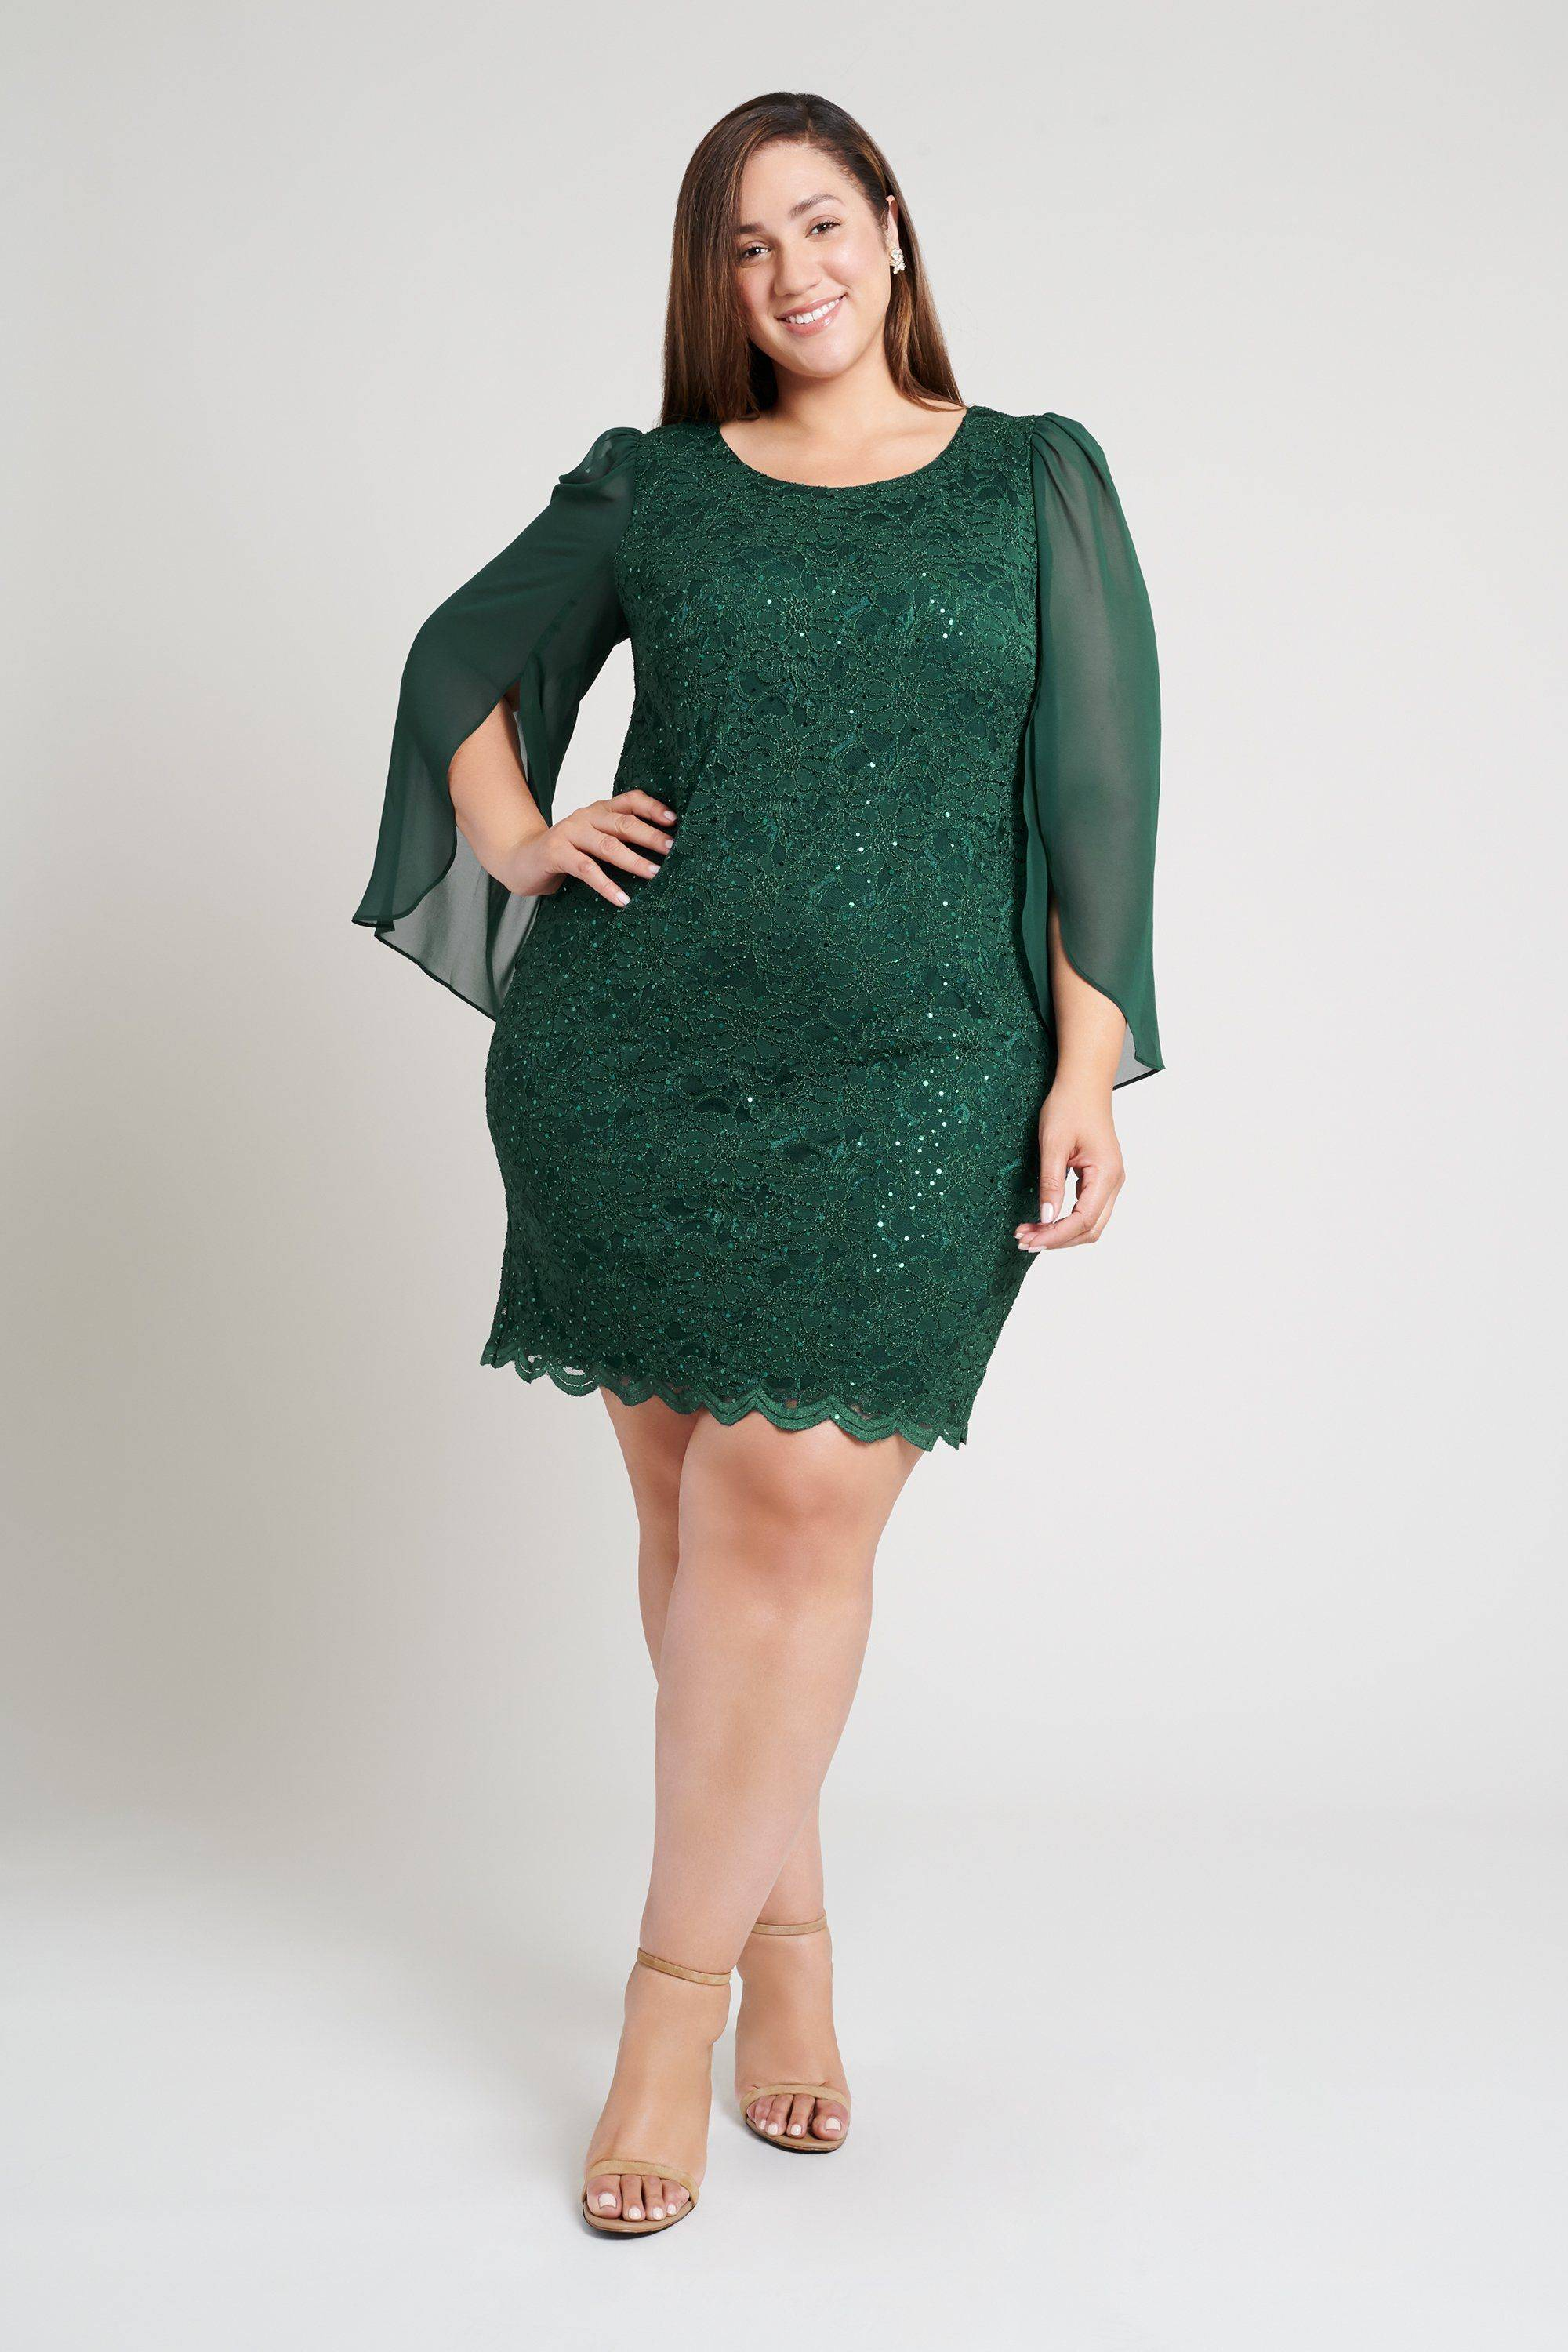 green-sequin-dress-plus-size-lace-hunter-holiday-conencted-apparel